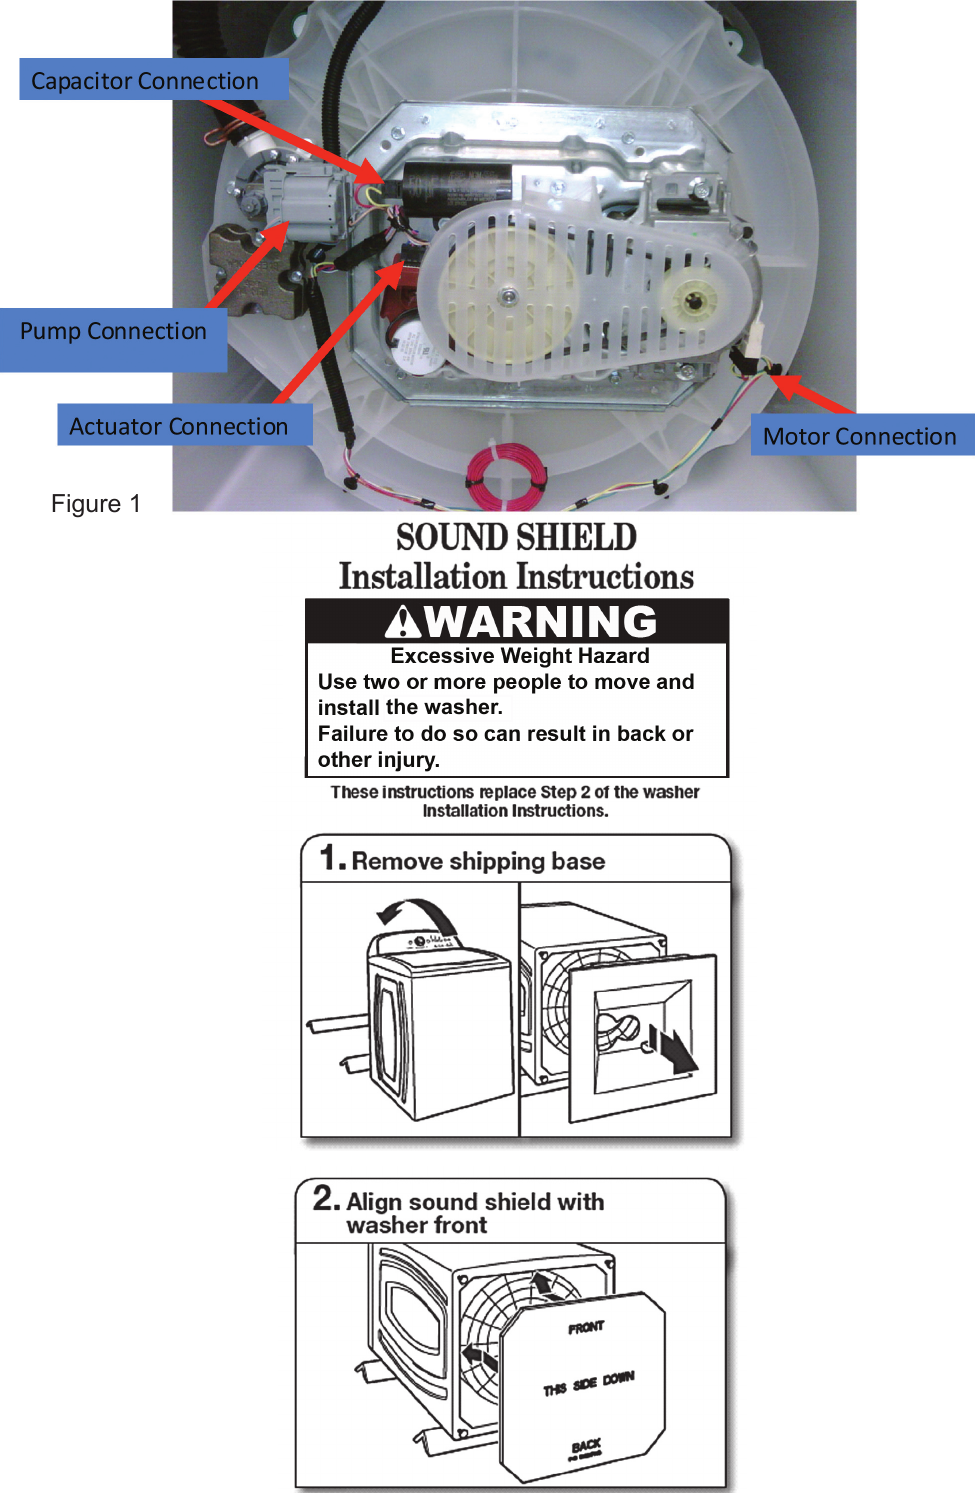 Whirlpool Washer Wtw5500 Users Manual Motor Wiring Diagram Page 2 Of 4